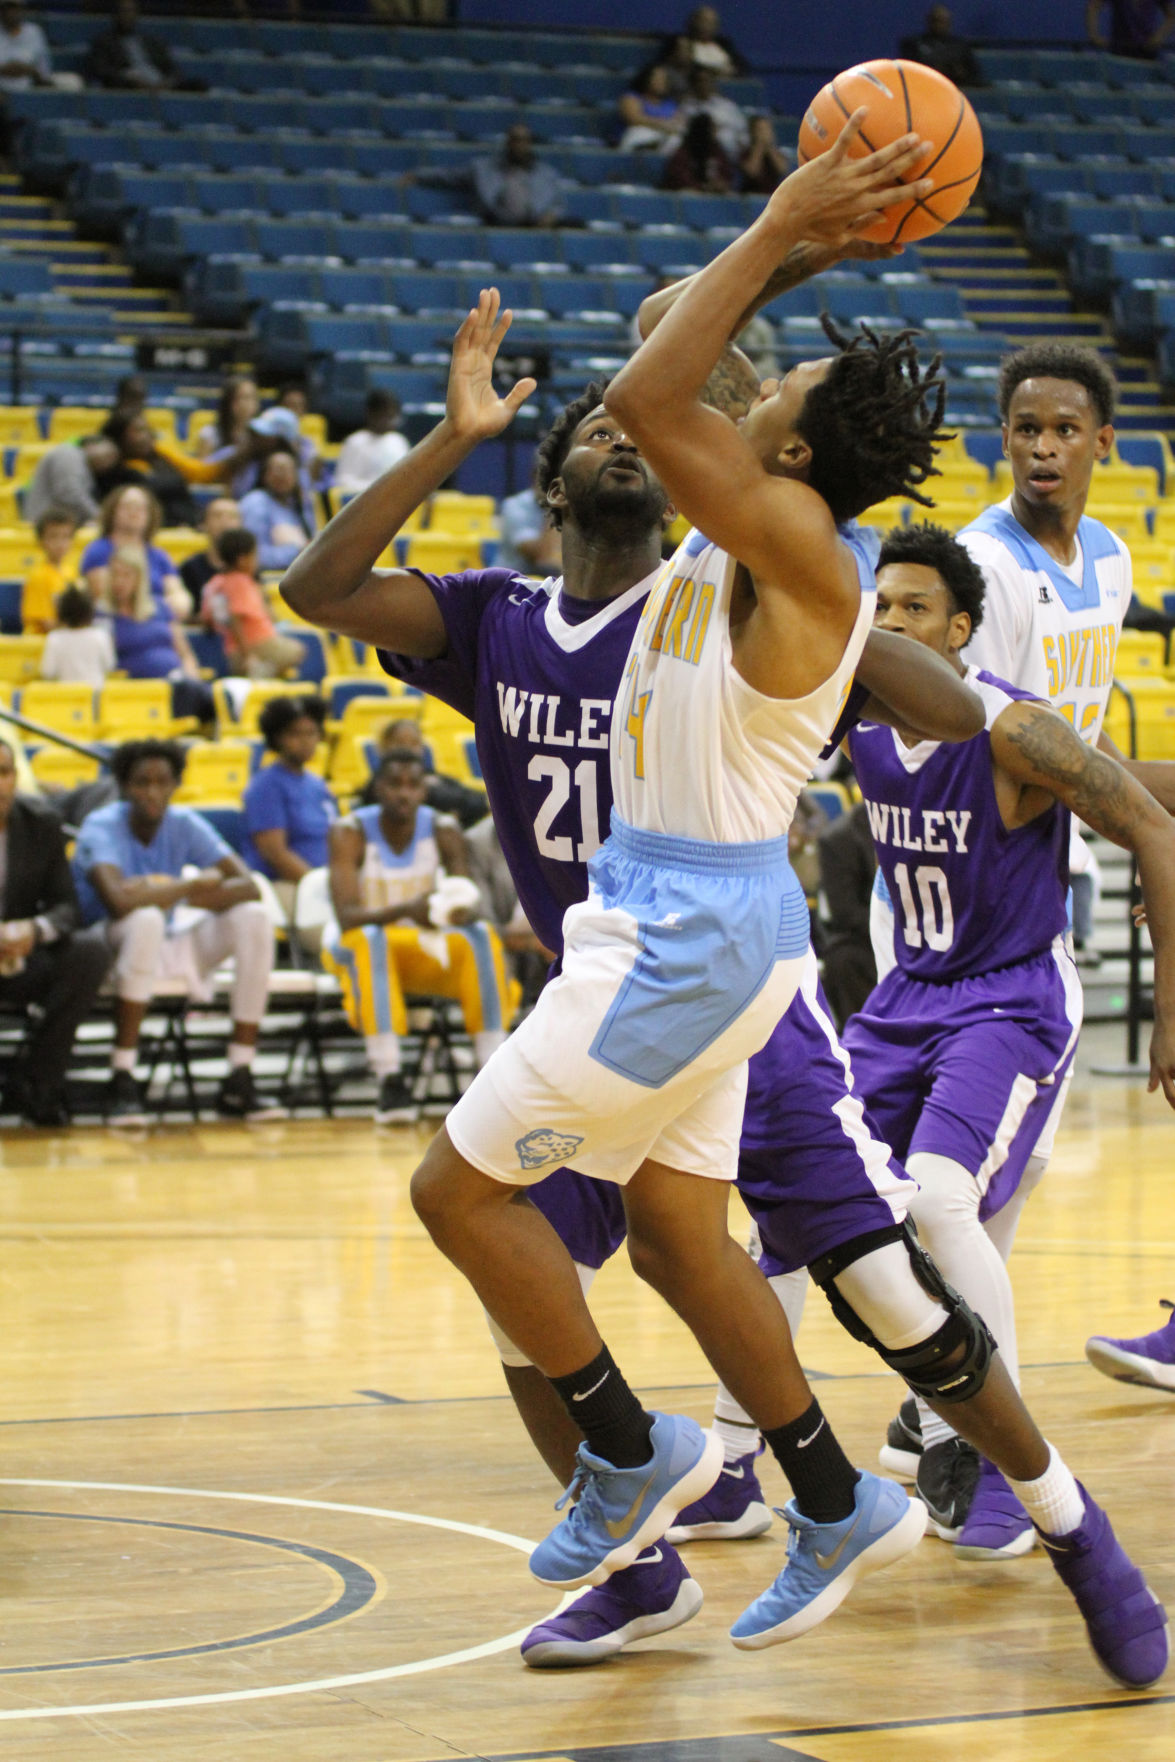 wileycollegesouthern.9742.jpg